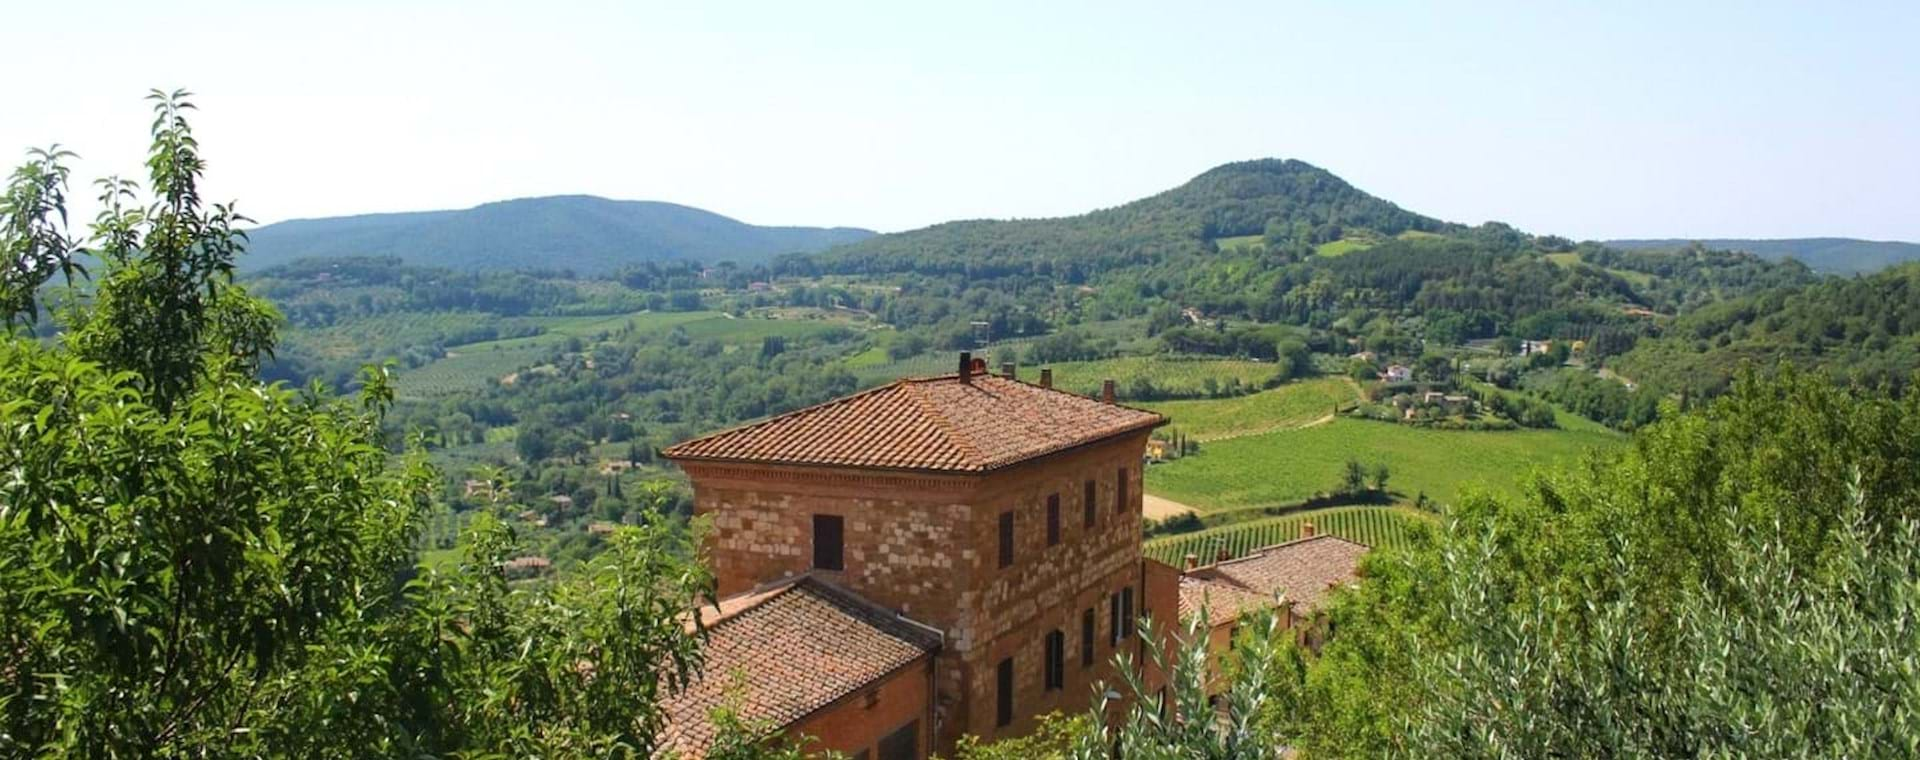 Guided Day Trip: Tuscany from Rome with 3-Course Lunch & Wine Pairing